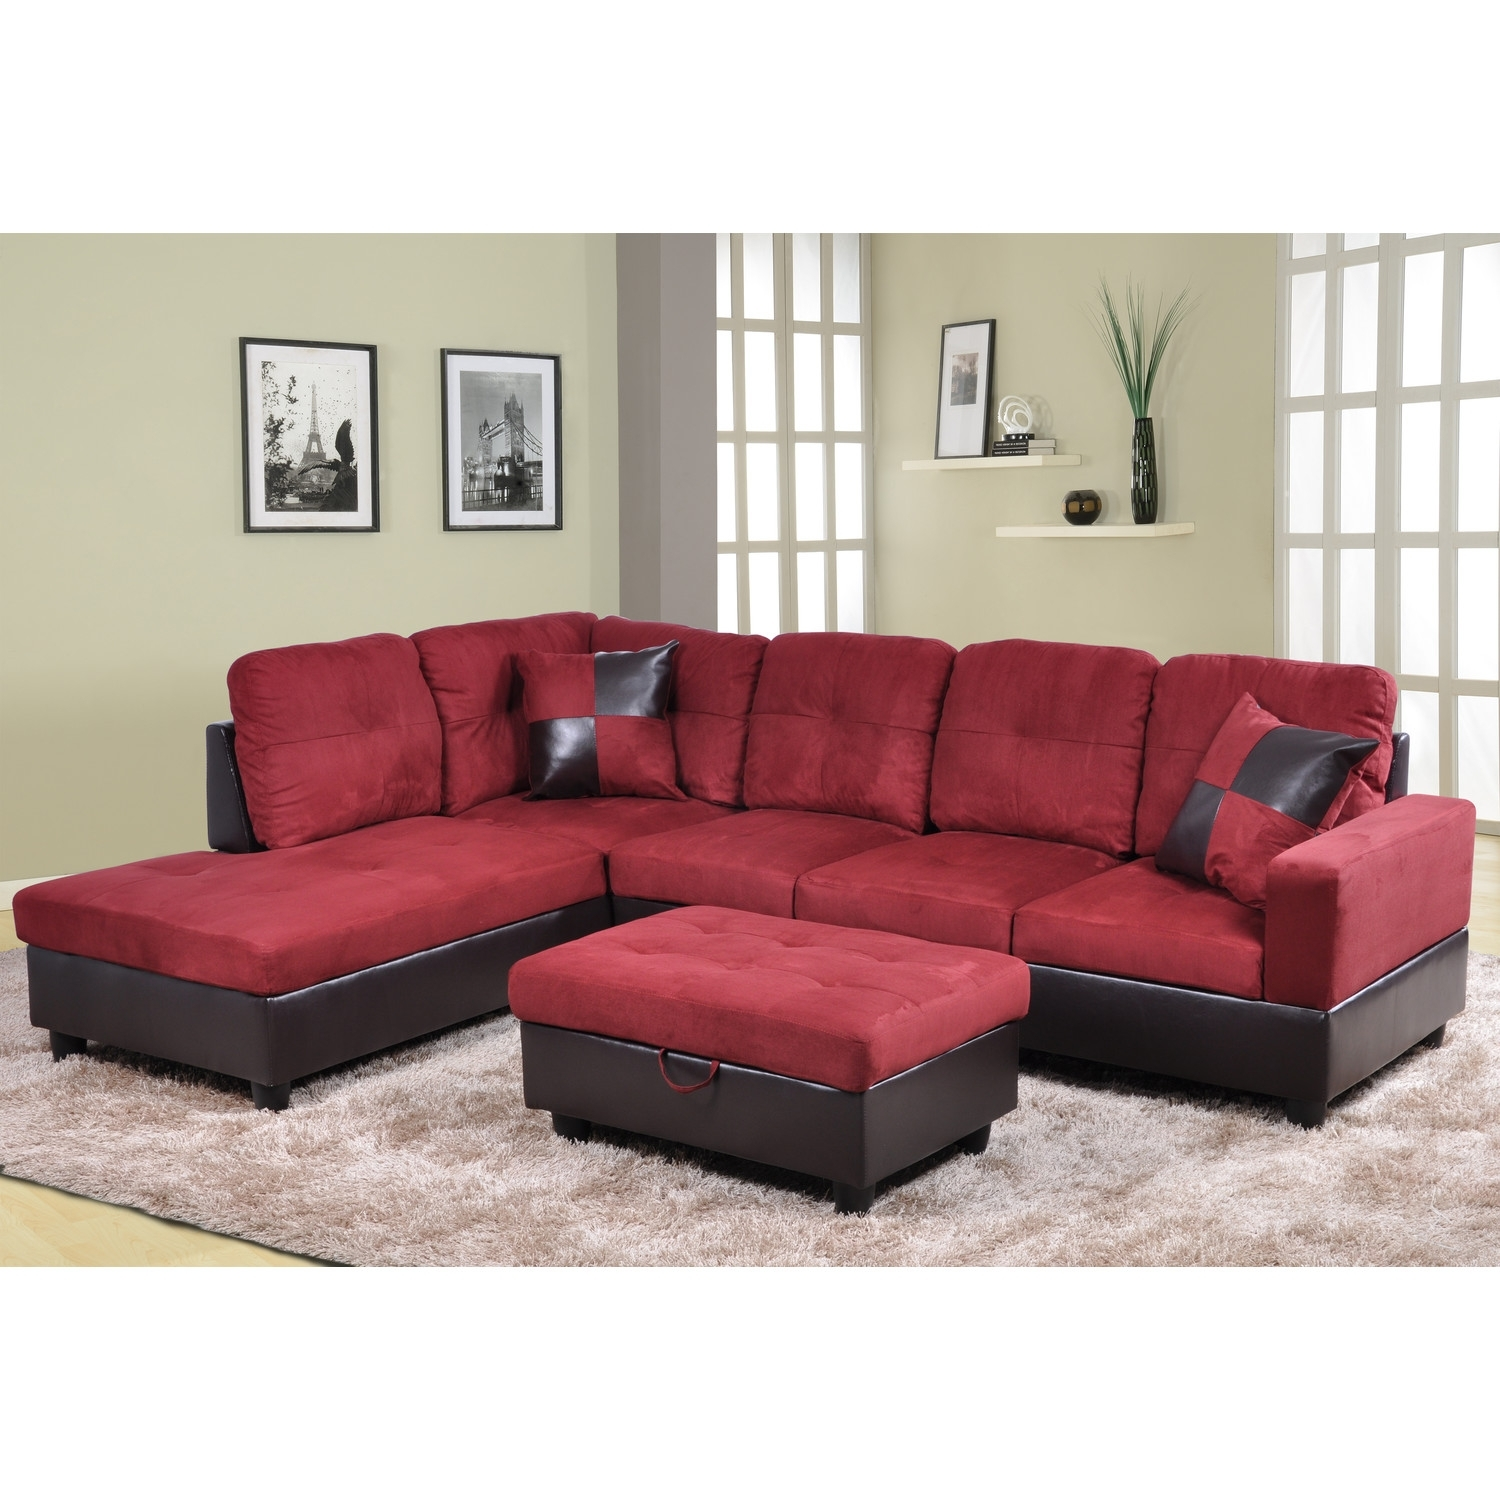 Nice Cheap Sofas For Sale About Furniture Sophisticated Designs Of In Sectional Sofas Under 300 (Photo 11 of 15)